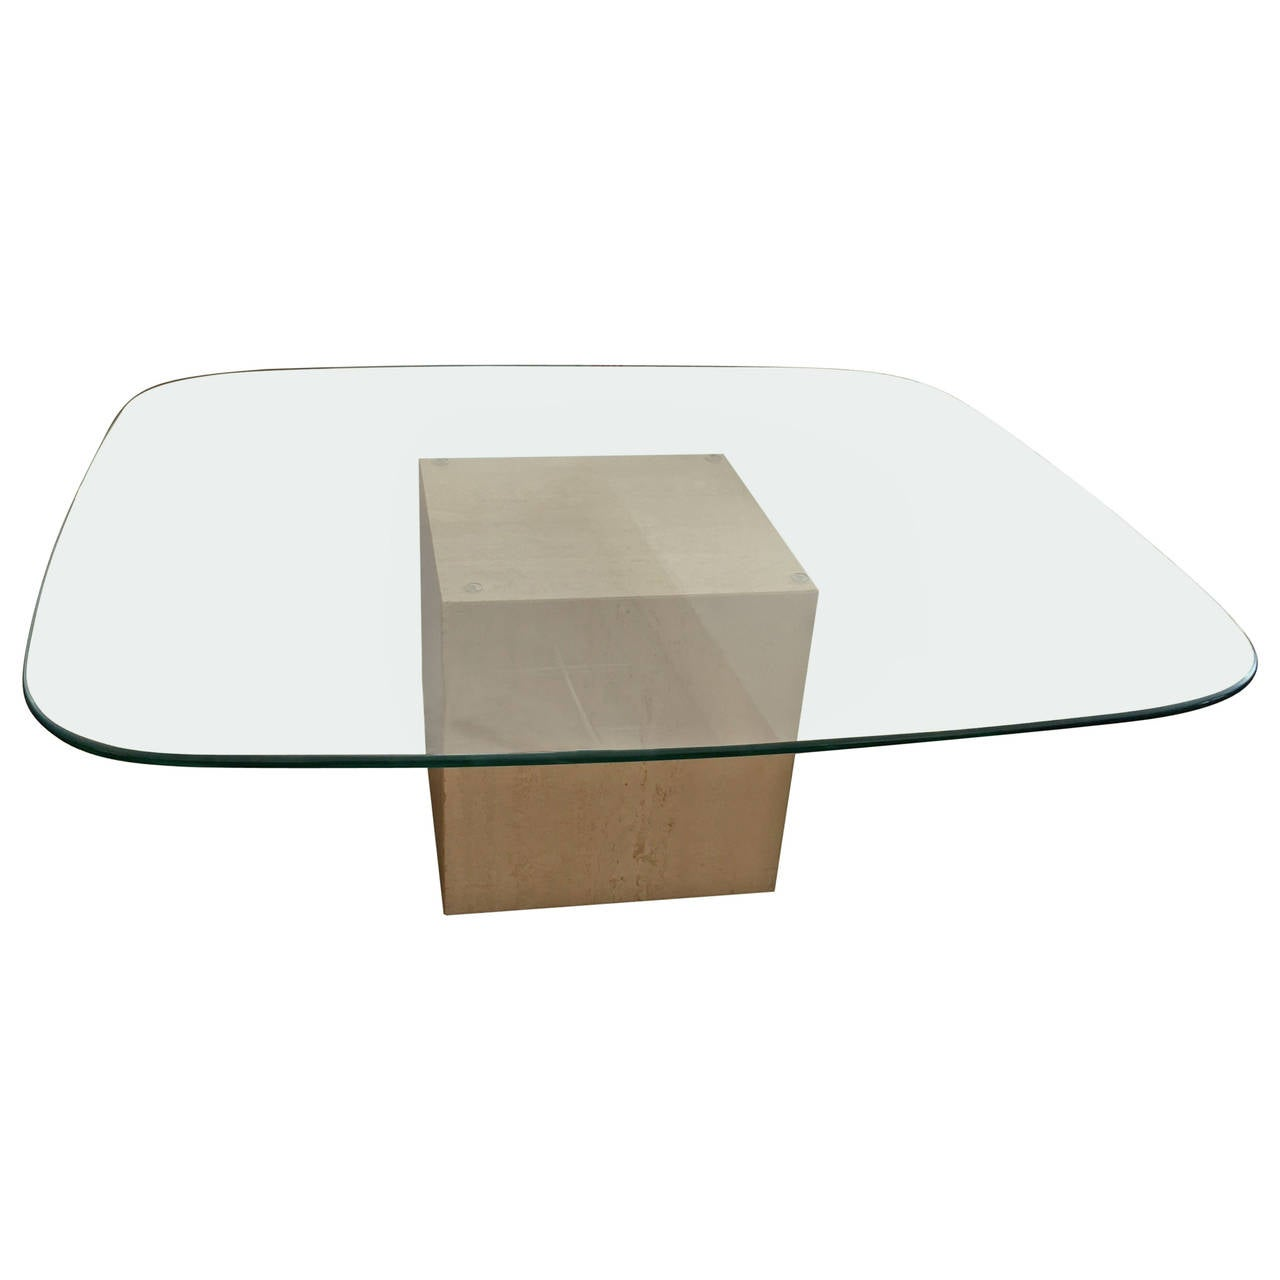 2824462 ljpeg for Glass cube coffee table